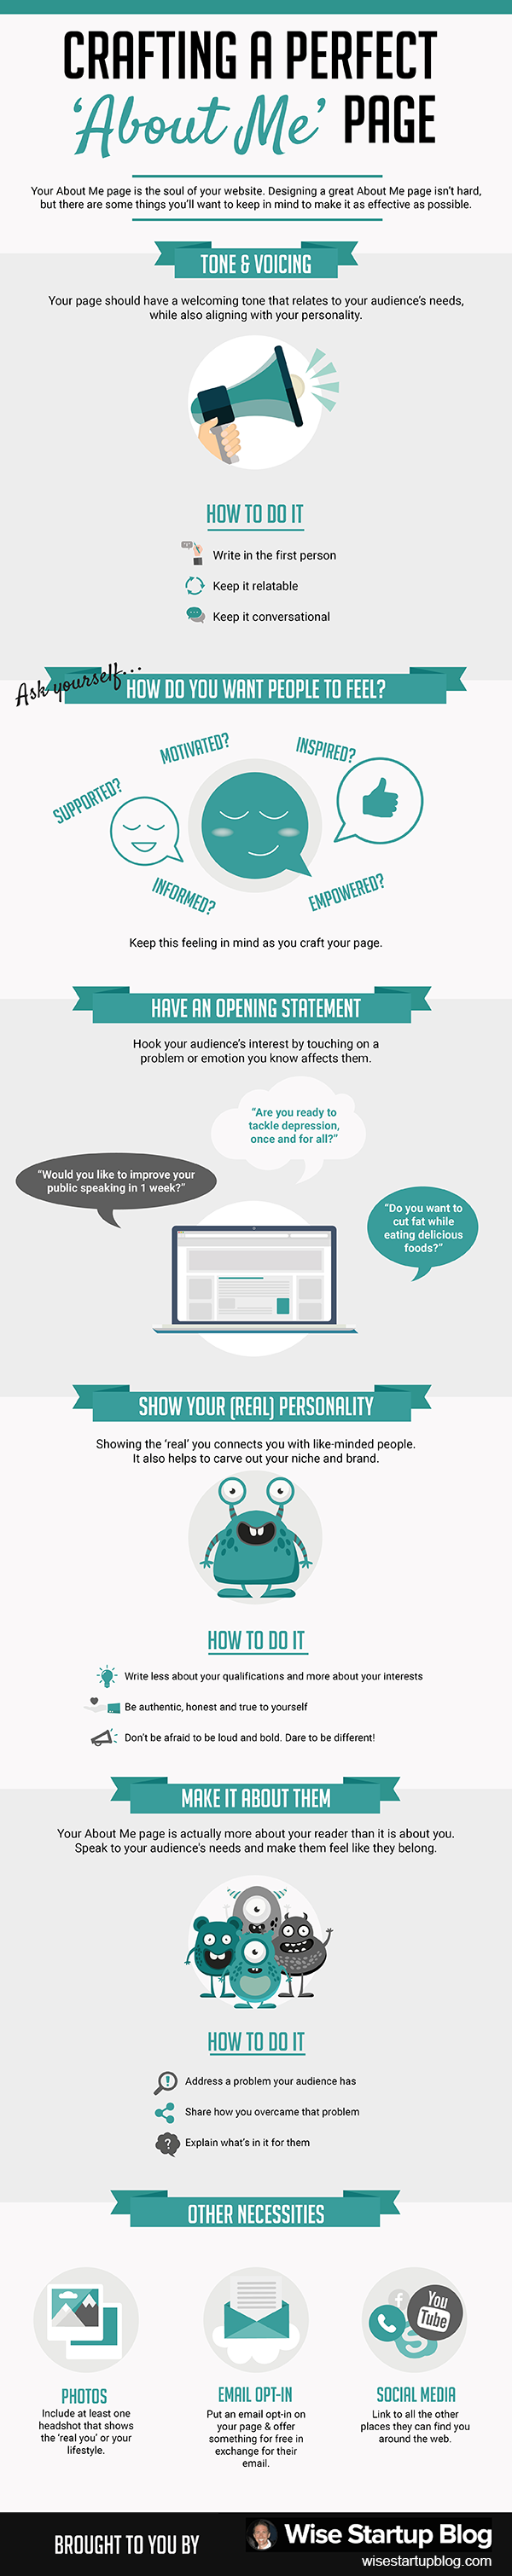 About Me Page: The Ultimate How to Guide [Infographic]